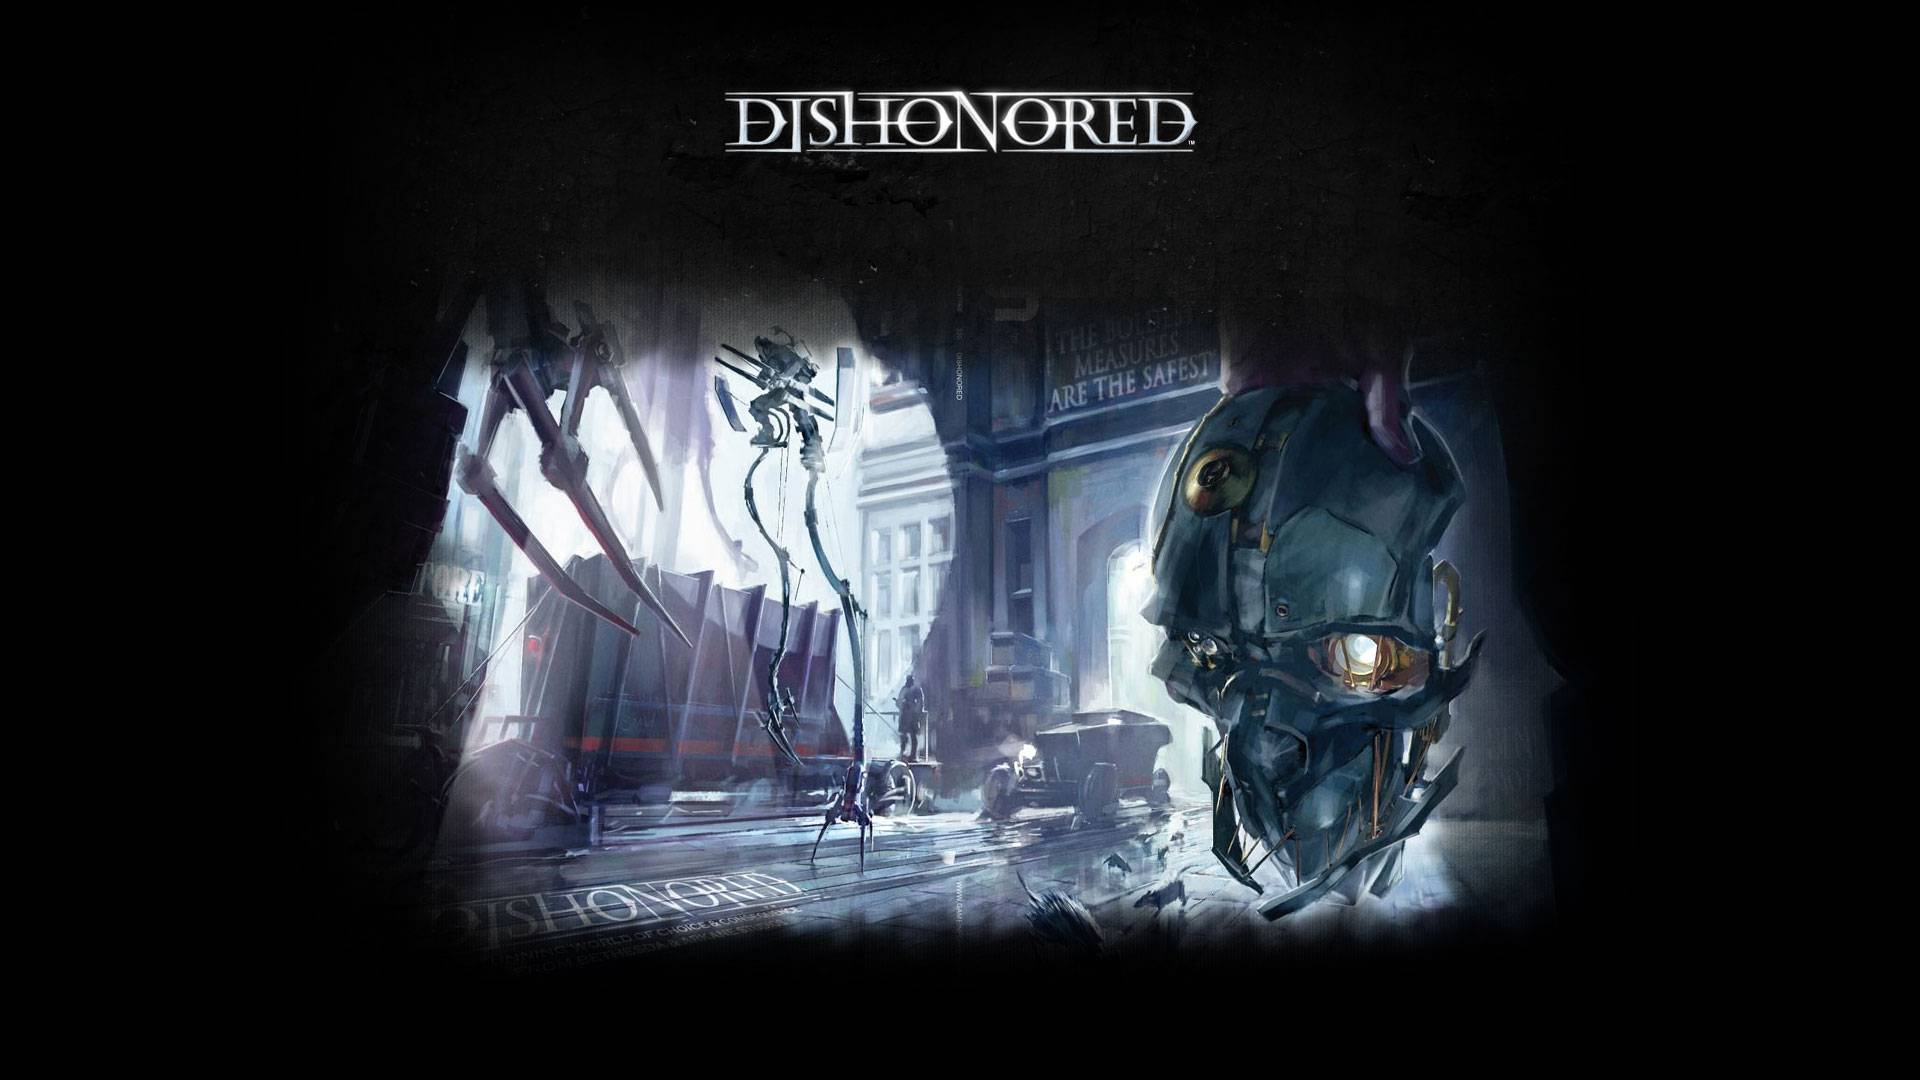 Dishonored Wallpapers In HD